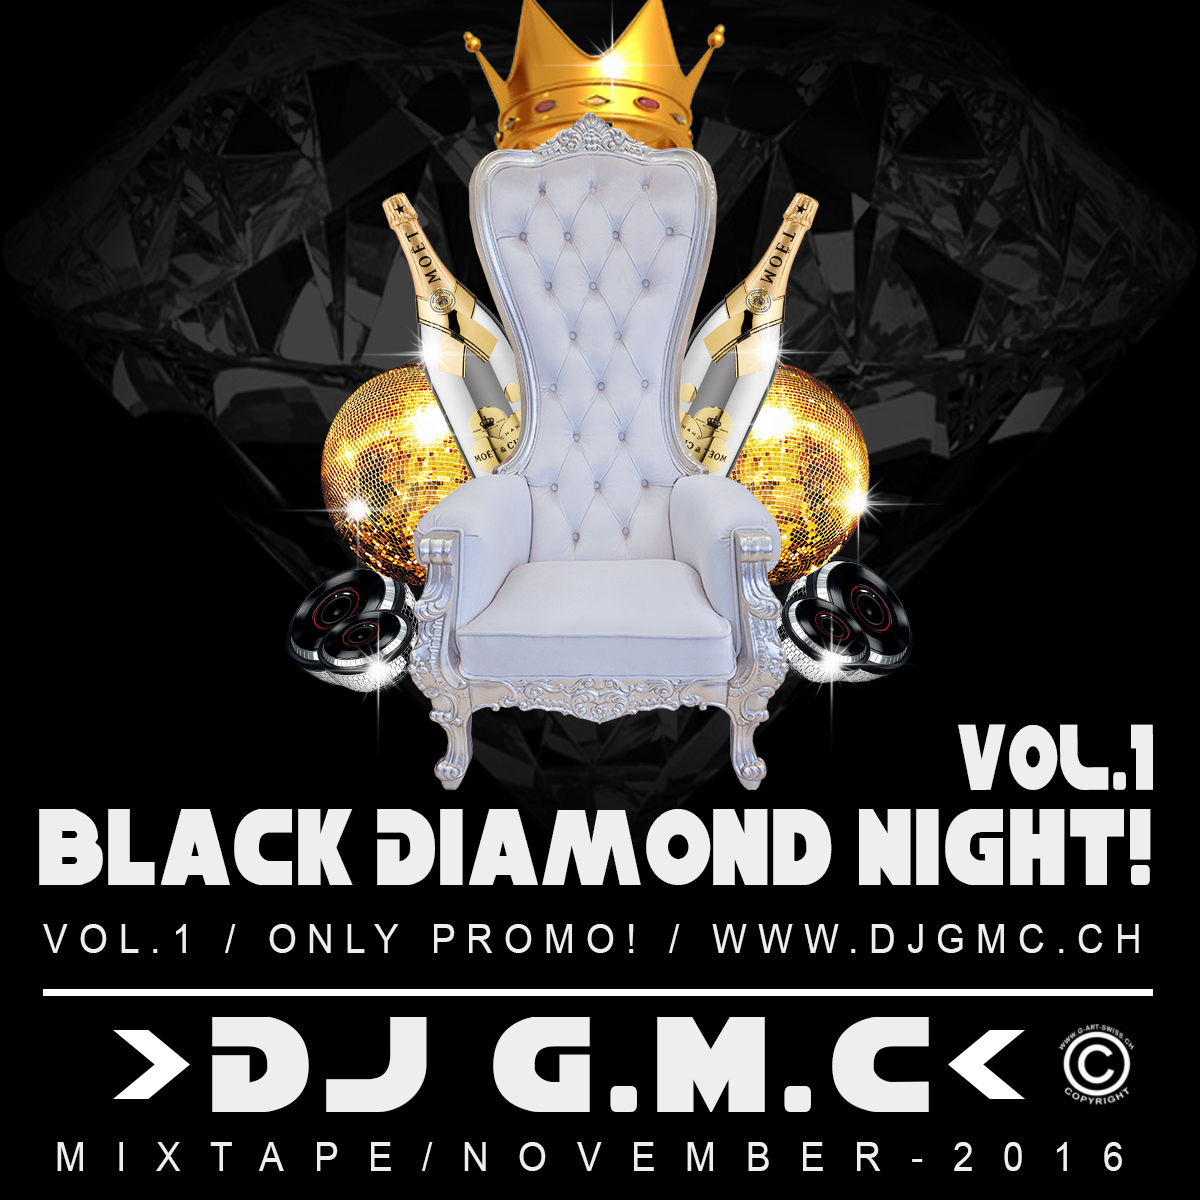 black_diamond_night_vol1